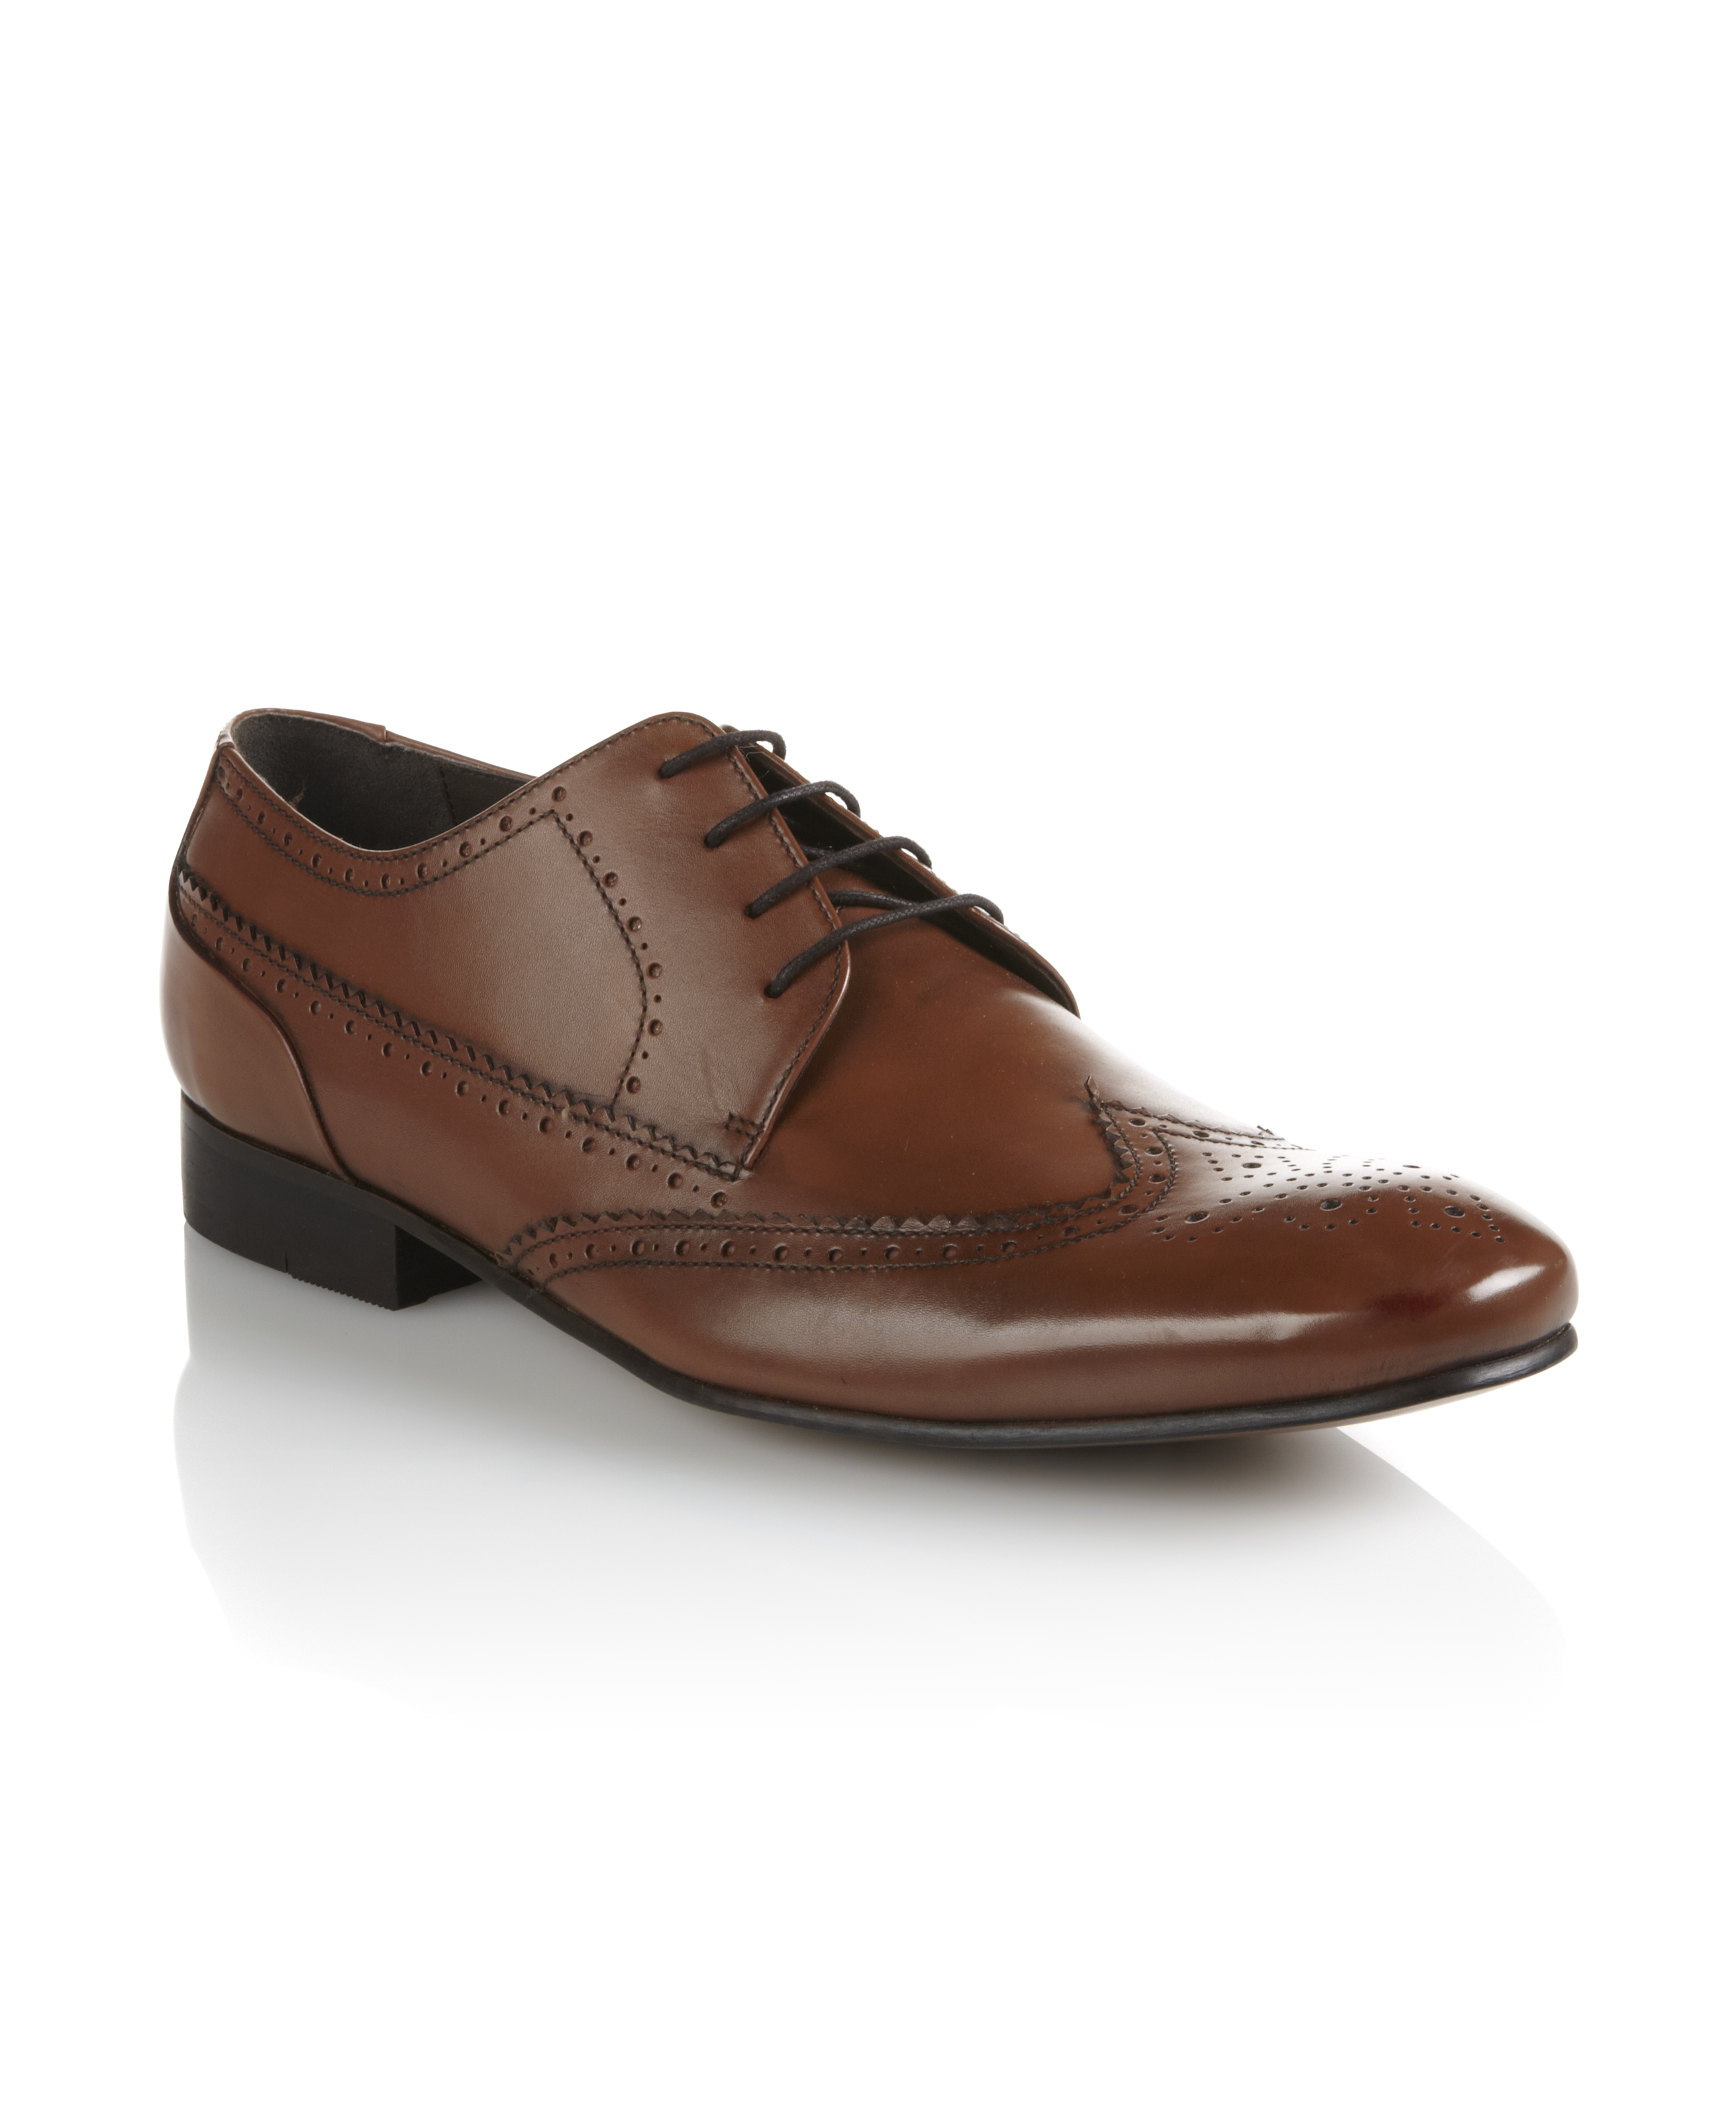 new dune mens brown lace up flat brogue formal